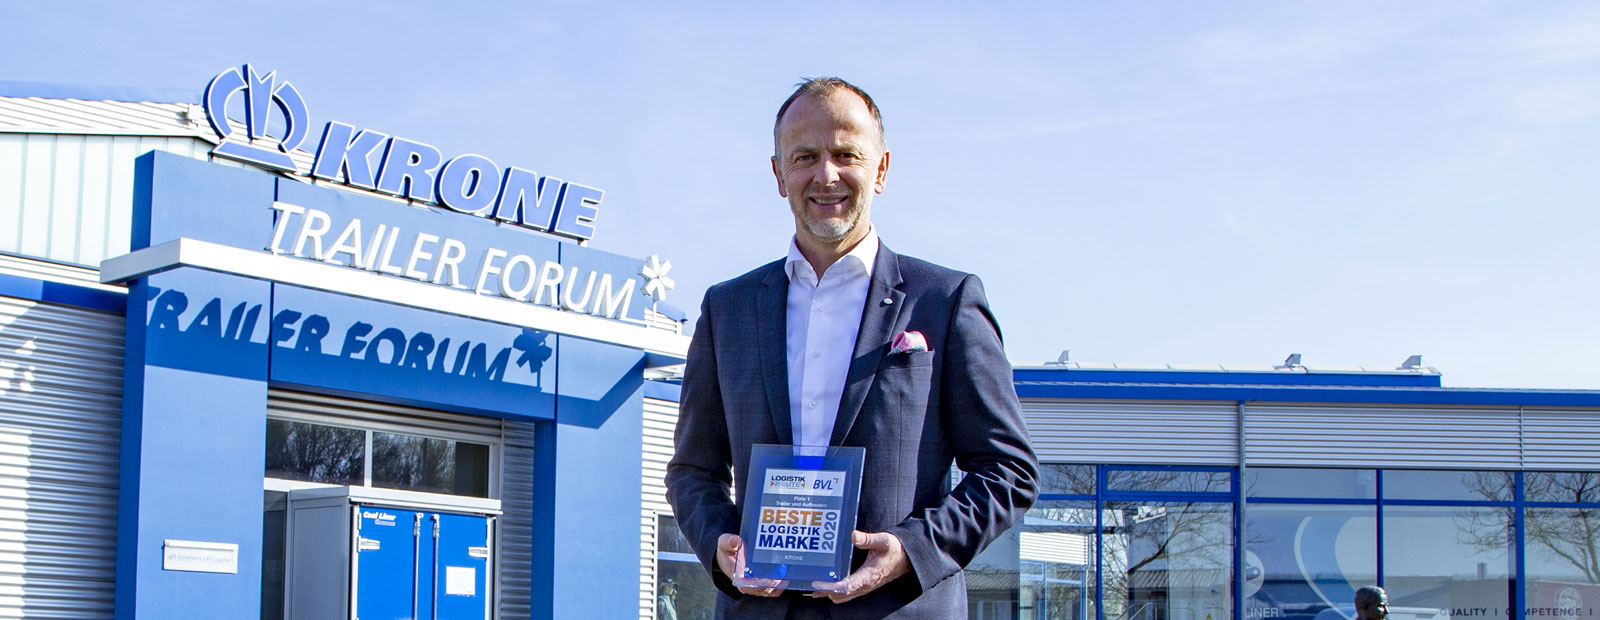 "Krone wins ""Best logistics brand for trailers and bodies"""